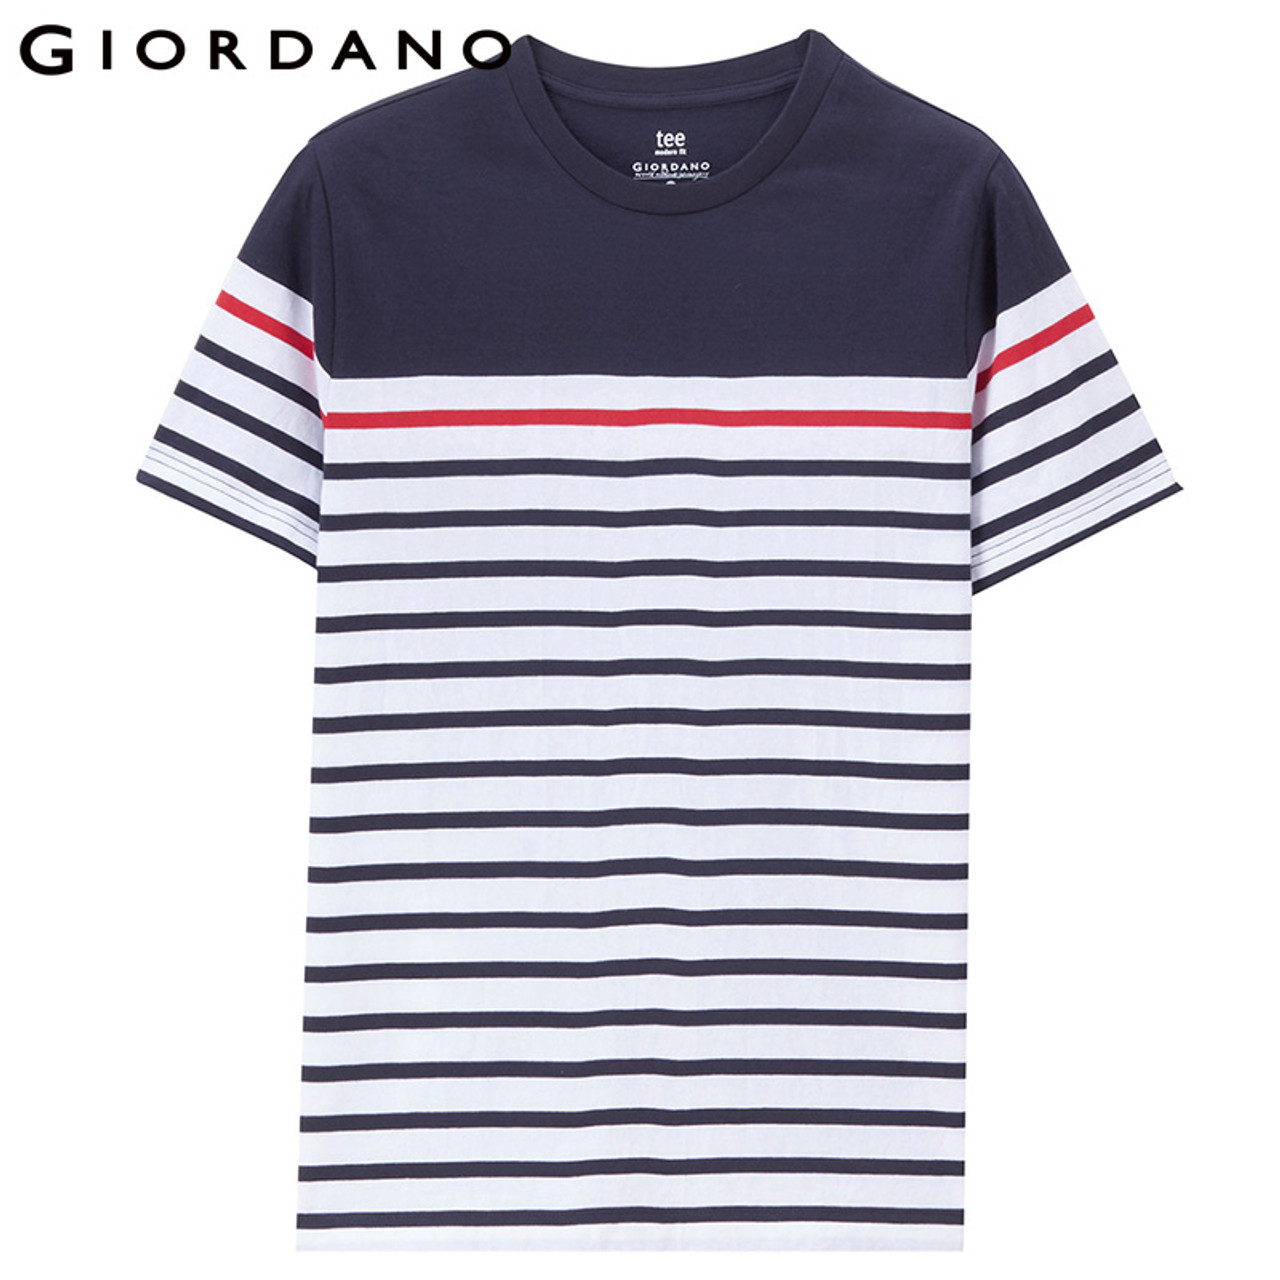 af656802 ... Giordano Men Tee Stripe Pattern Thirt Short Sleeves Crewneck Homme T- shirt Fashion 2018 Mens ...